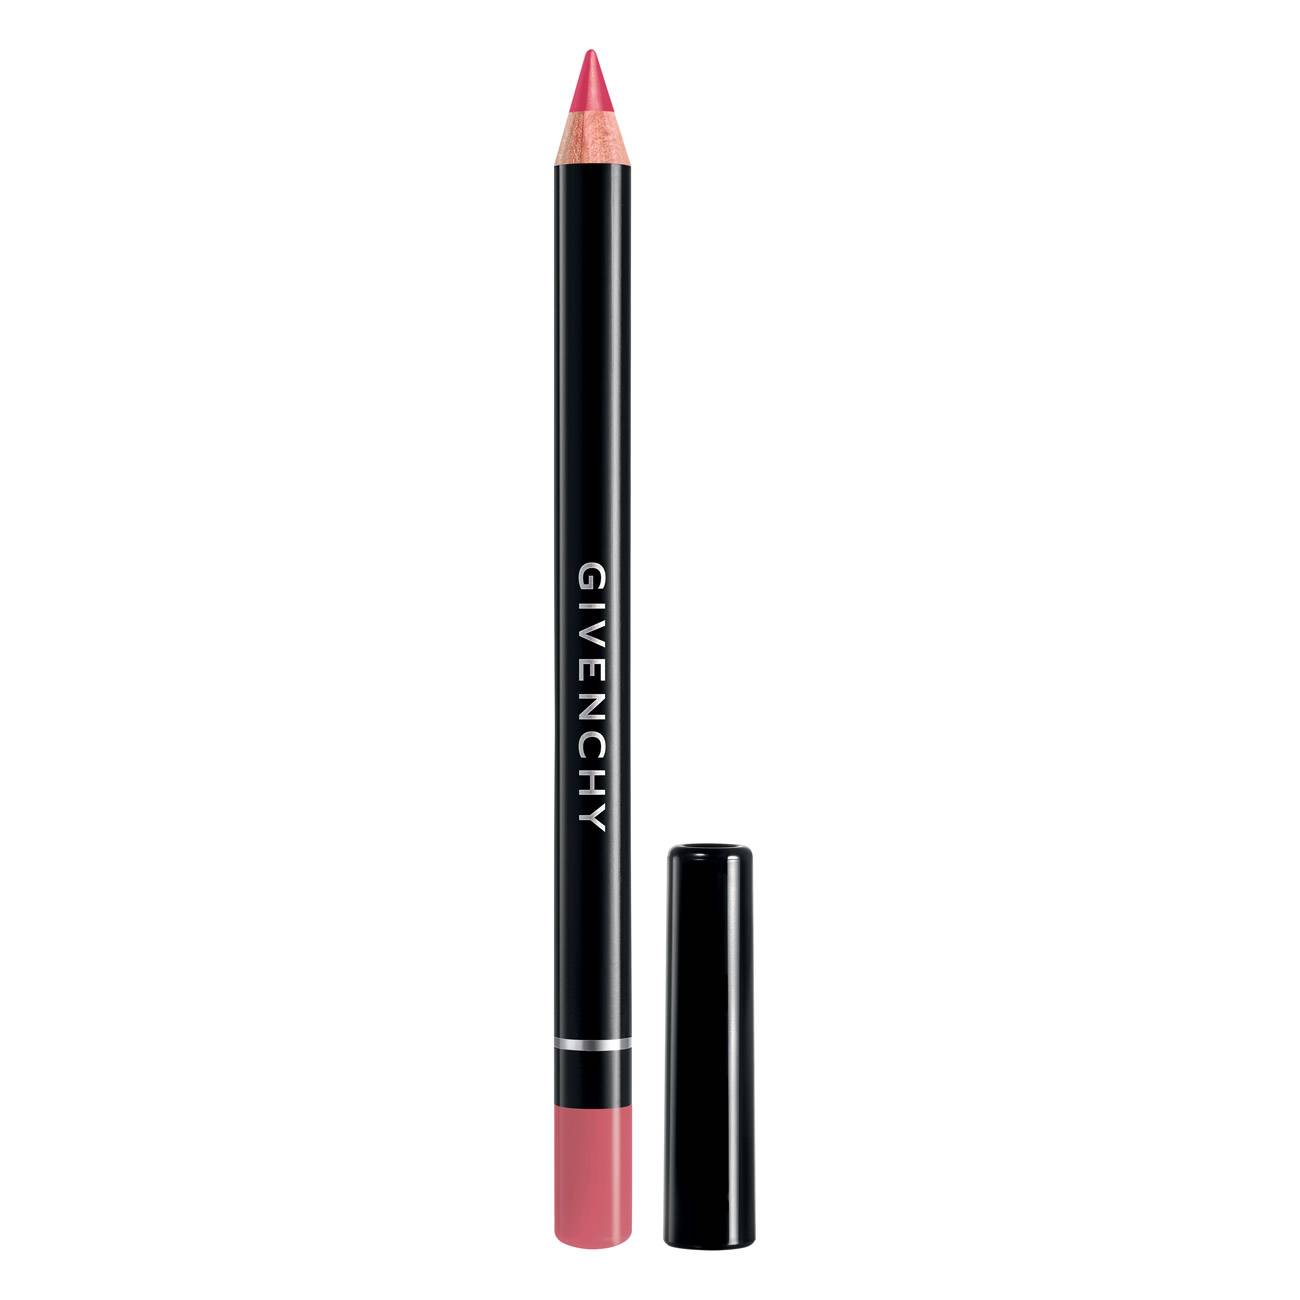 Lip Liner 1 G Rose Taffetas 3 Givenchy imagine 2021 bestvalue.eu